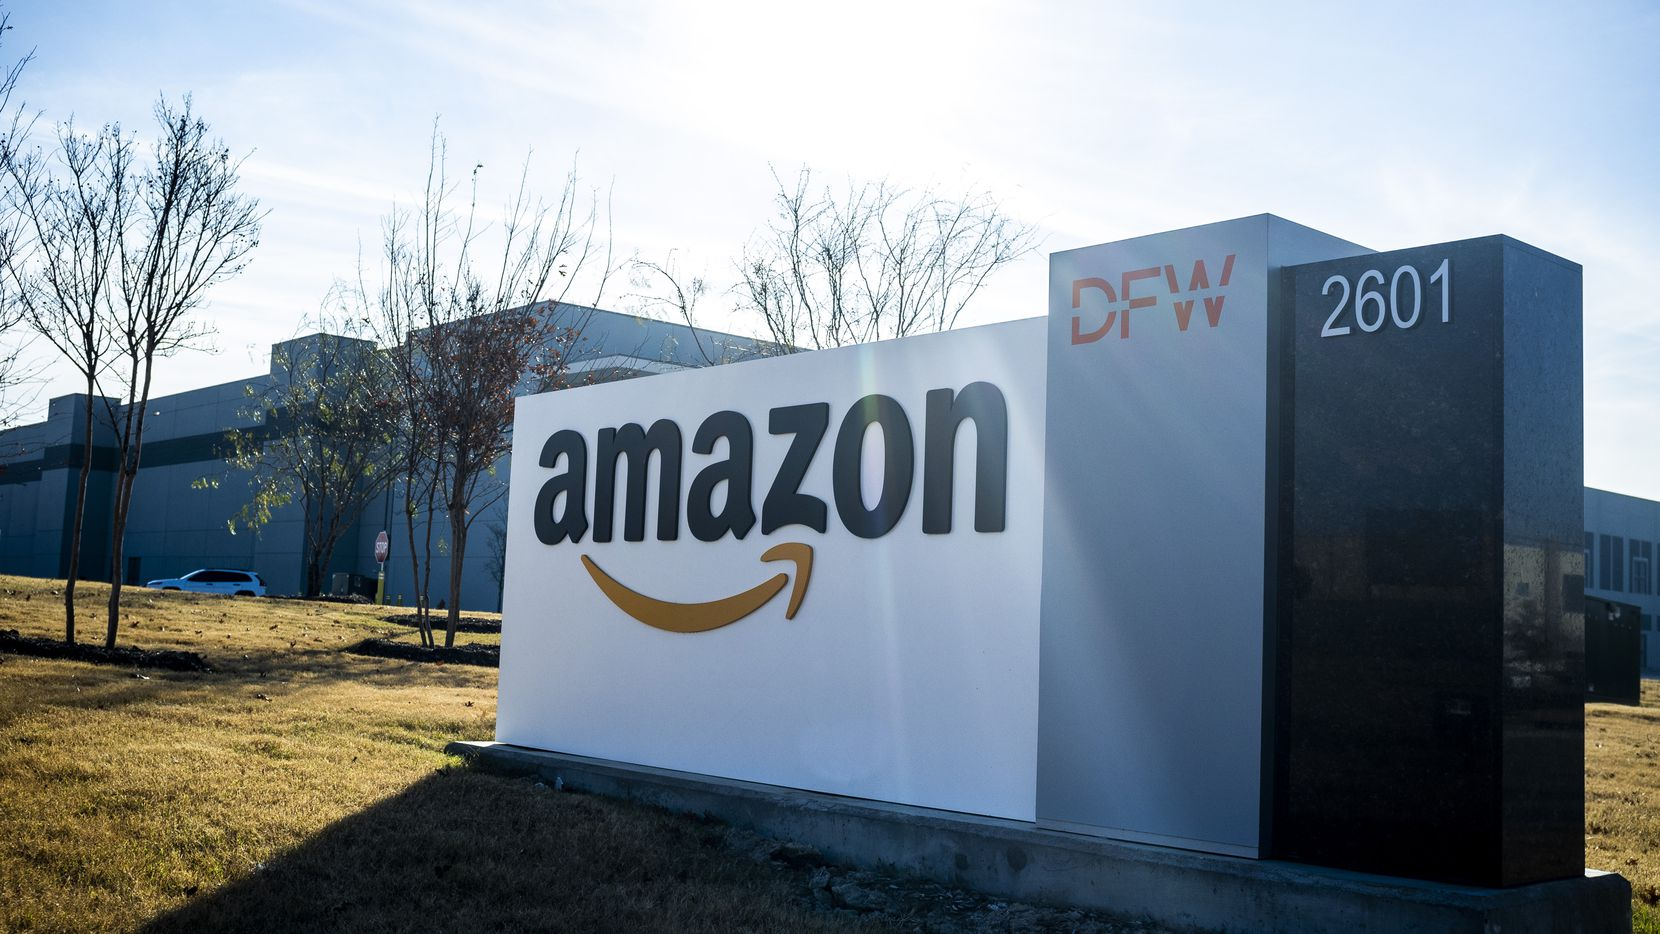 An Amazon fulfillment center in Grapevine. In its most recent quarter, Amazon more than doubled grocery delivery capacity and tripled grocery pickup locations.